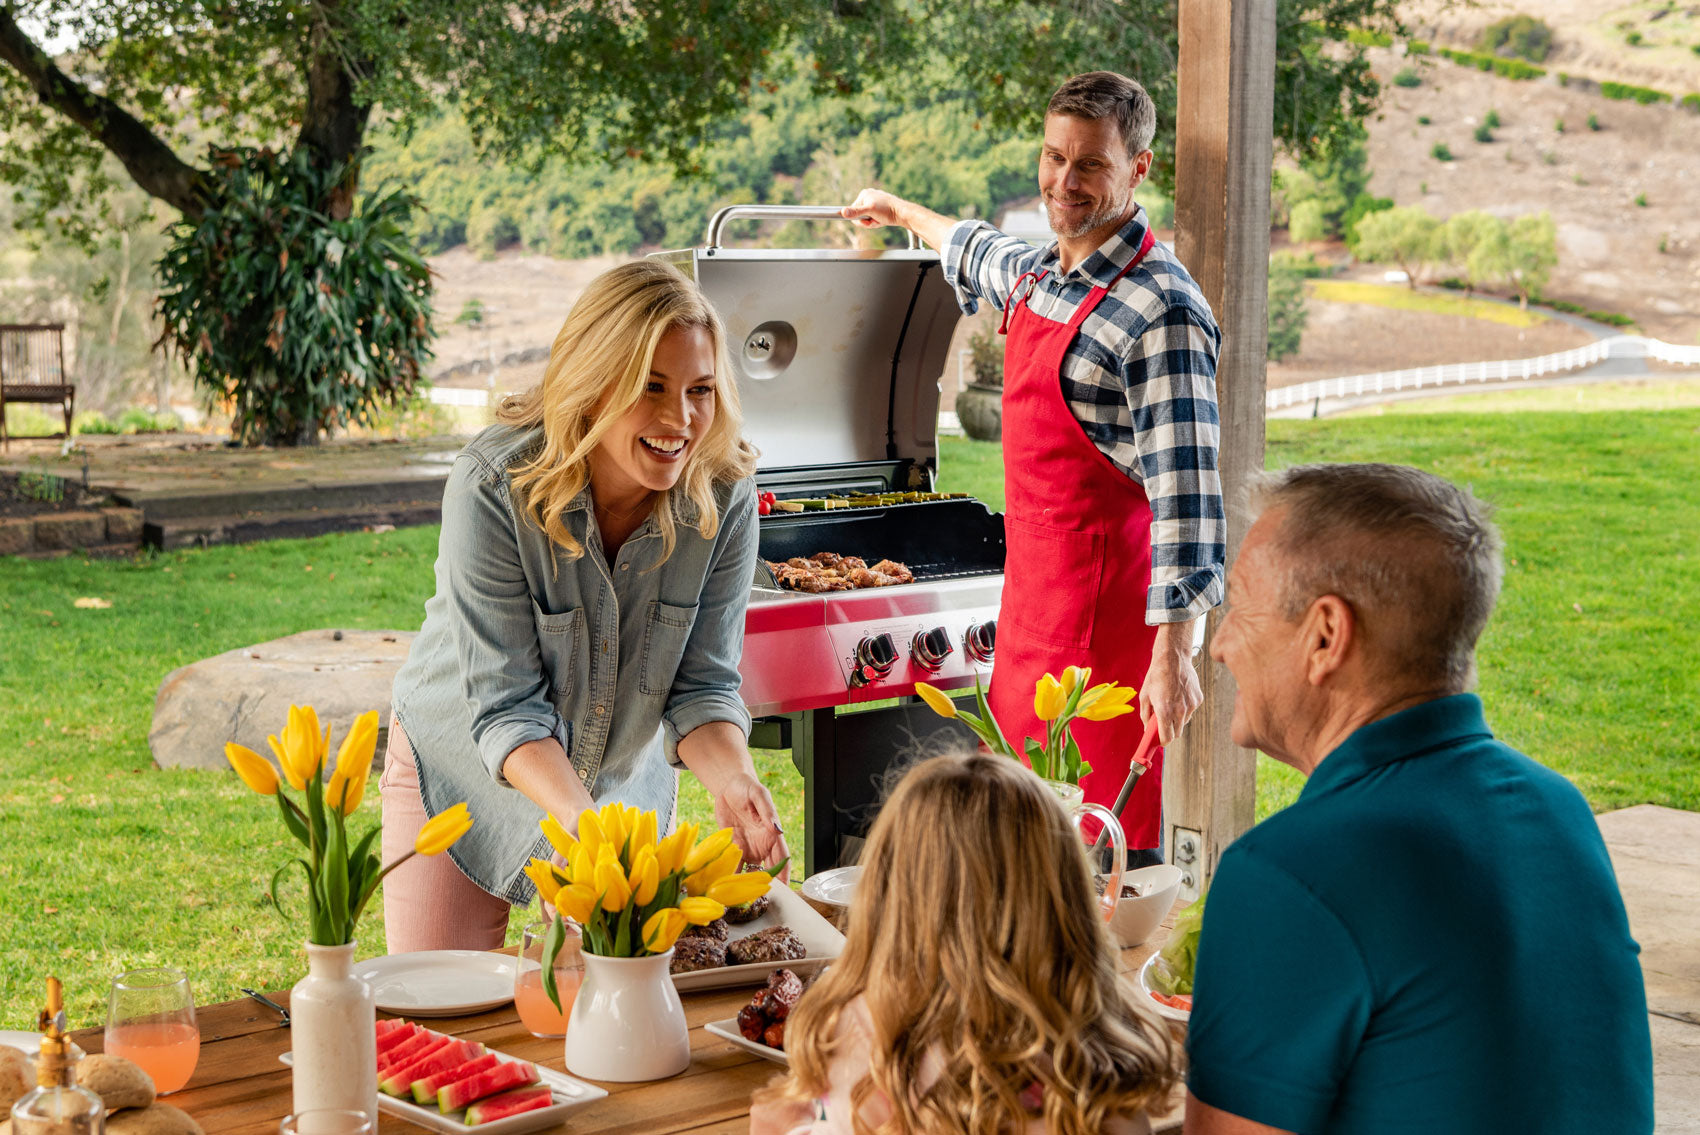 Family grilling in the backyard on the Nexgrill 5-burner gas grill